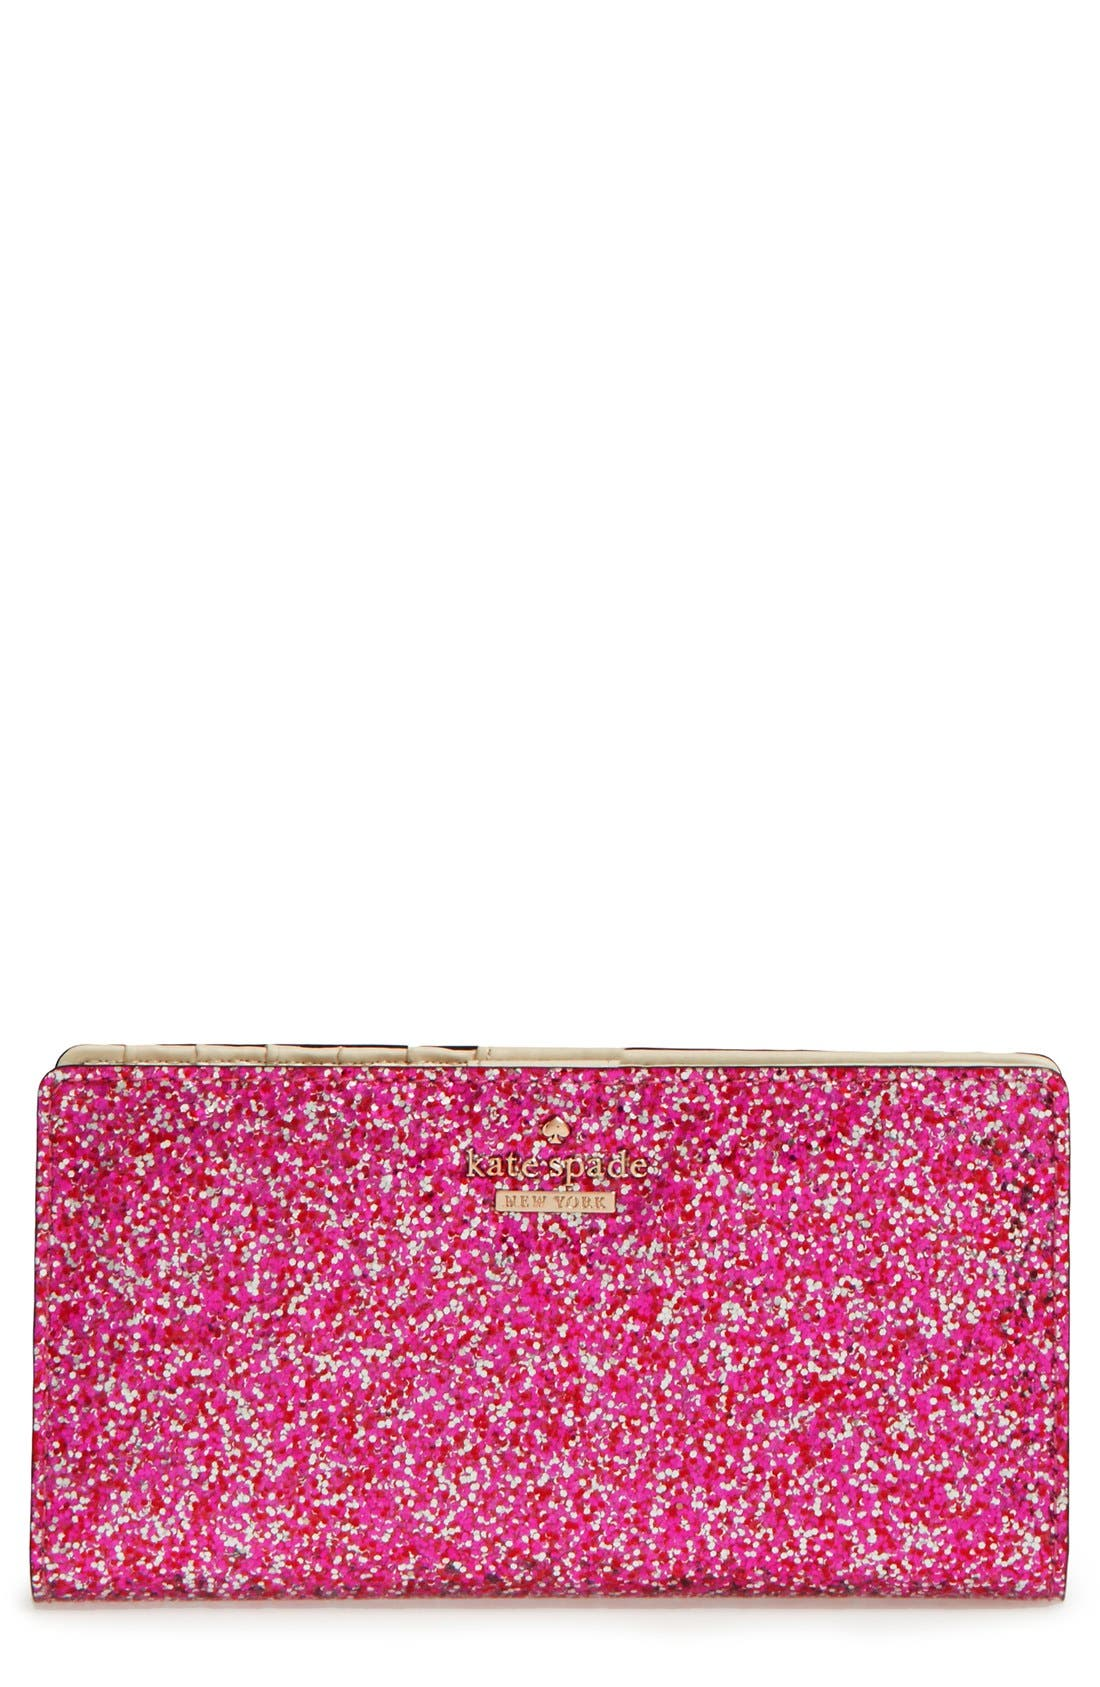 'glitter bug - stacy' snap wallet,                             Main thumbnail 1, color,                             600